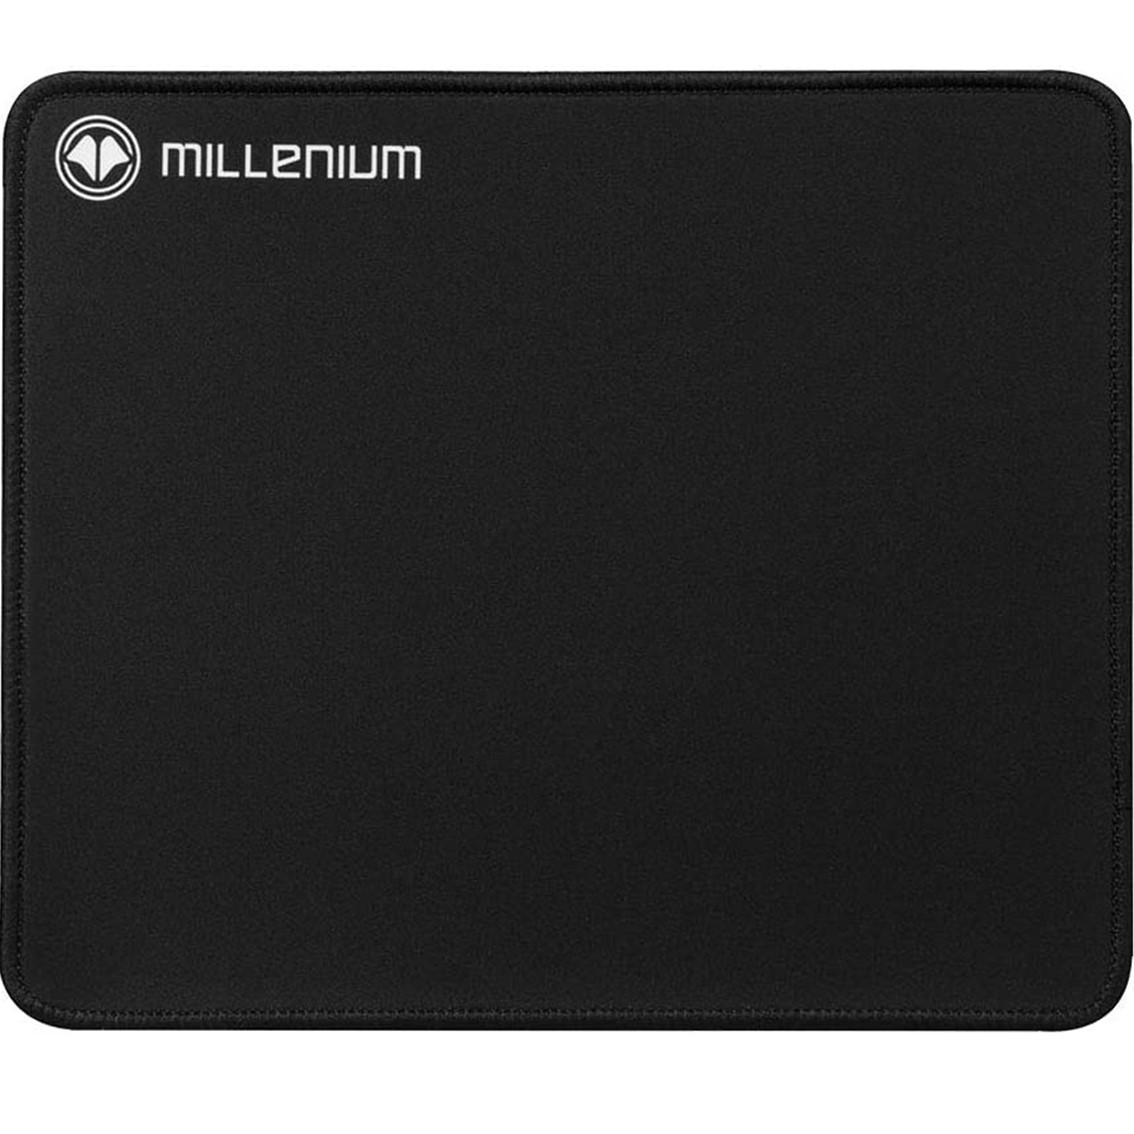 ALFOMBRILLA MILLENIUM SURFACE M GAMING 320X270X3MM